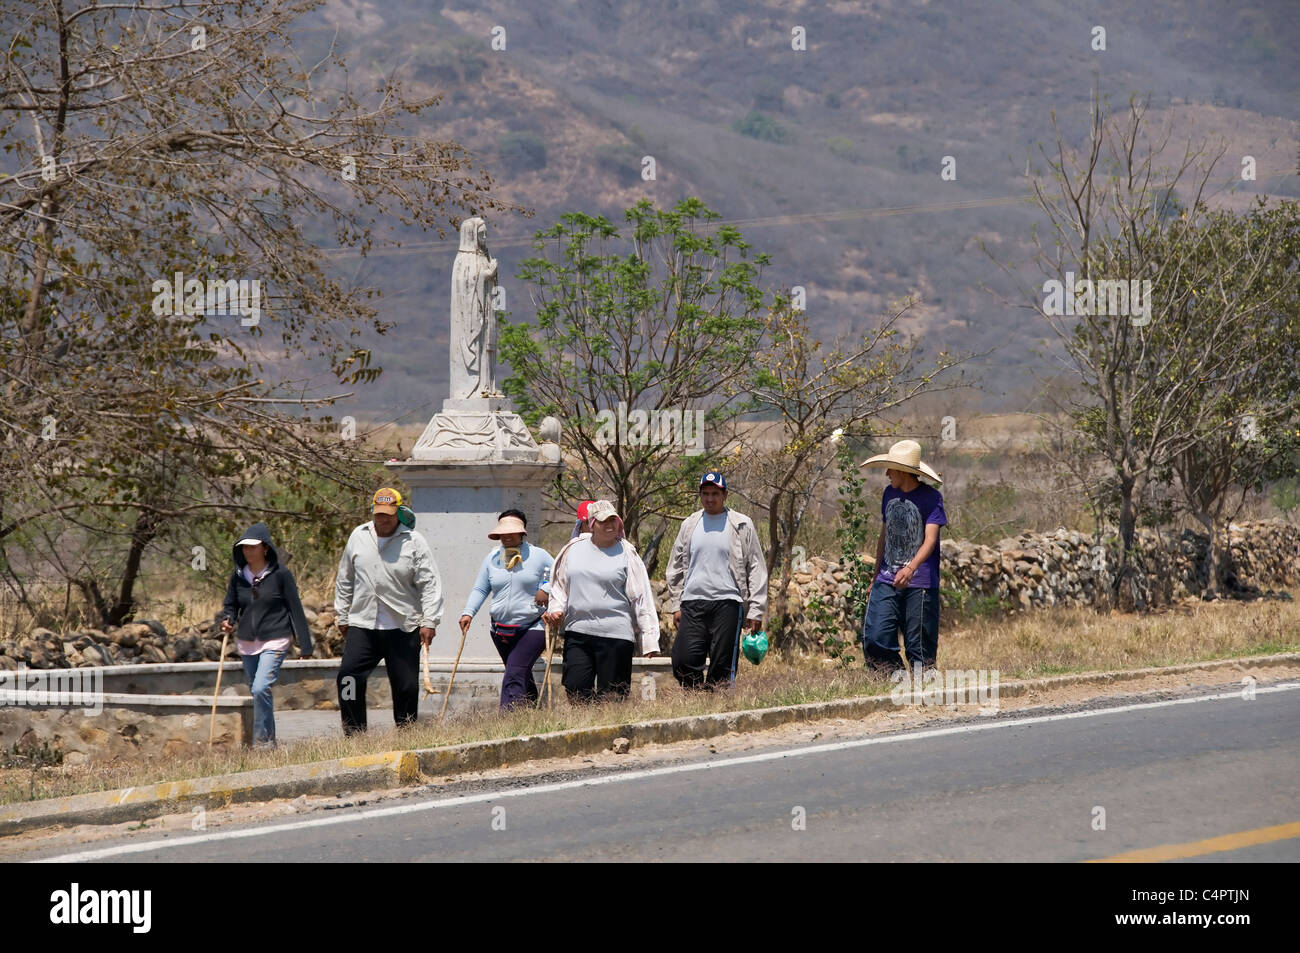 A group of devoted walkers make their way to Talpa de Allende during the annual pilgrimage to visit the Virgin of Stock Photo